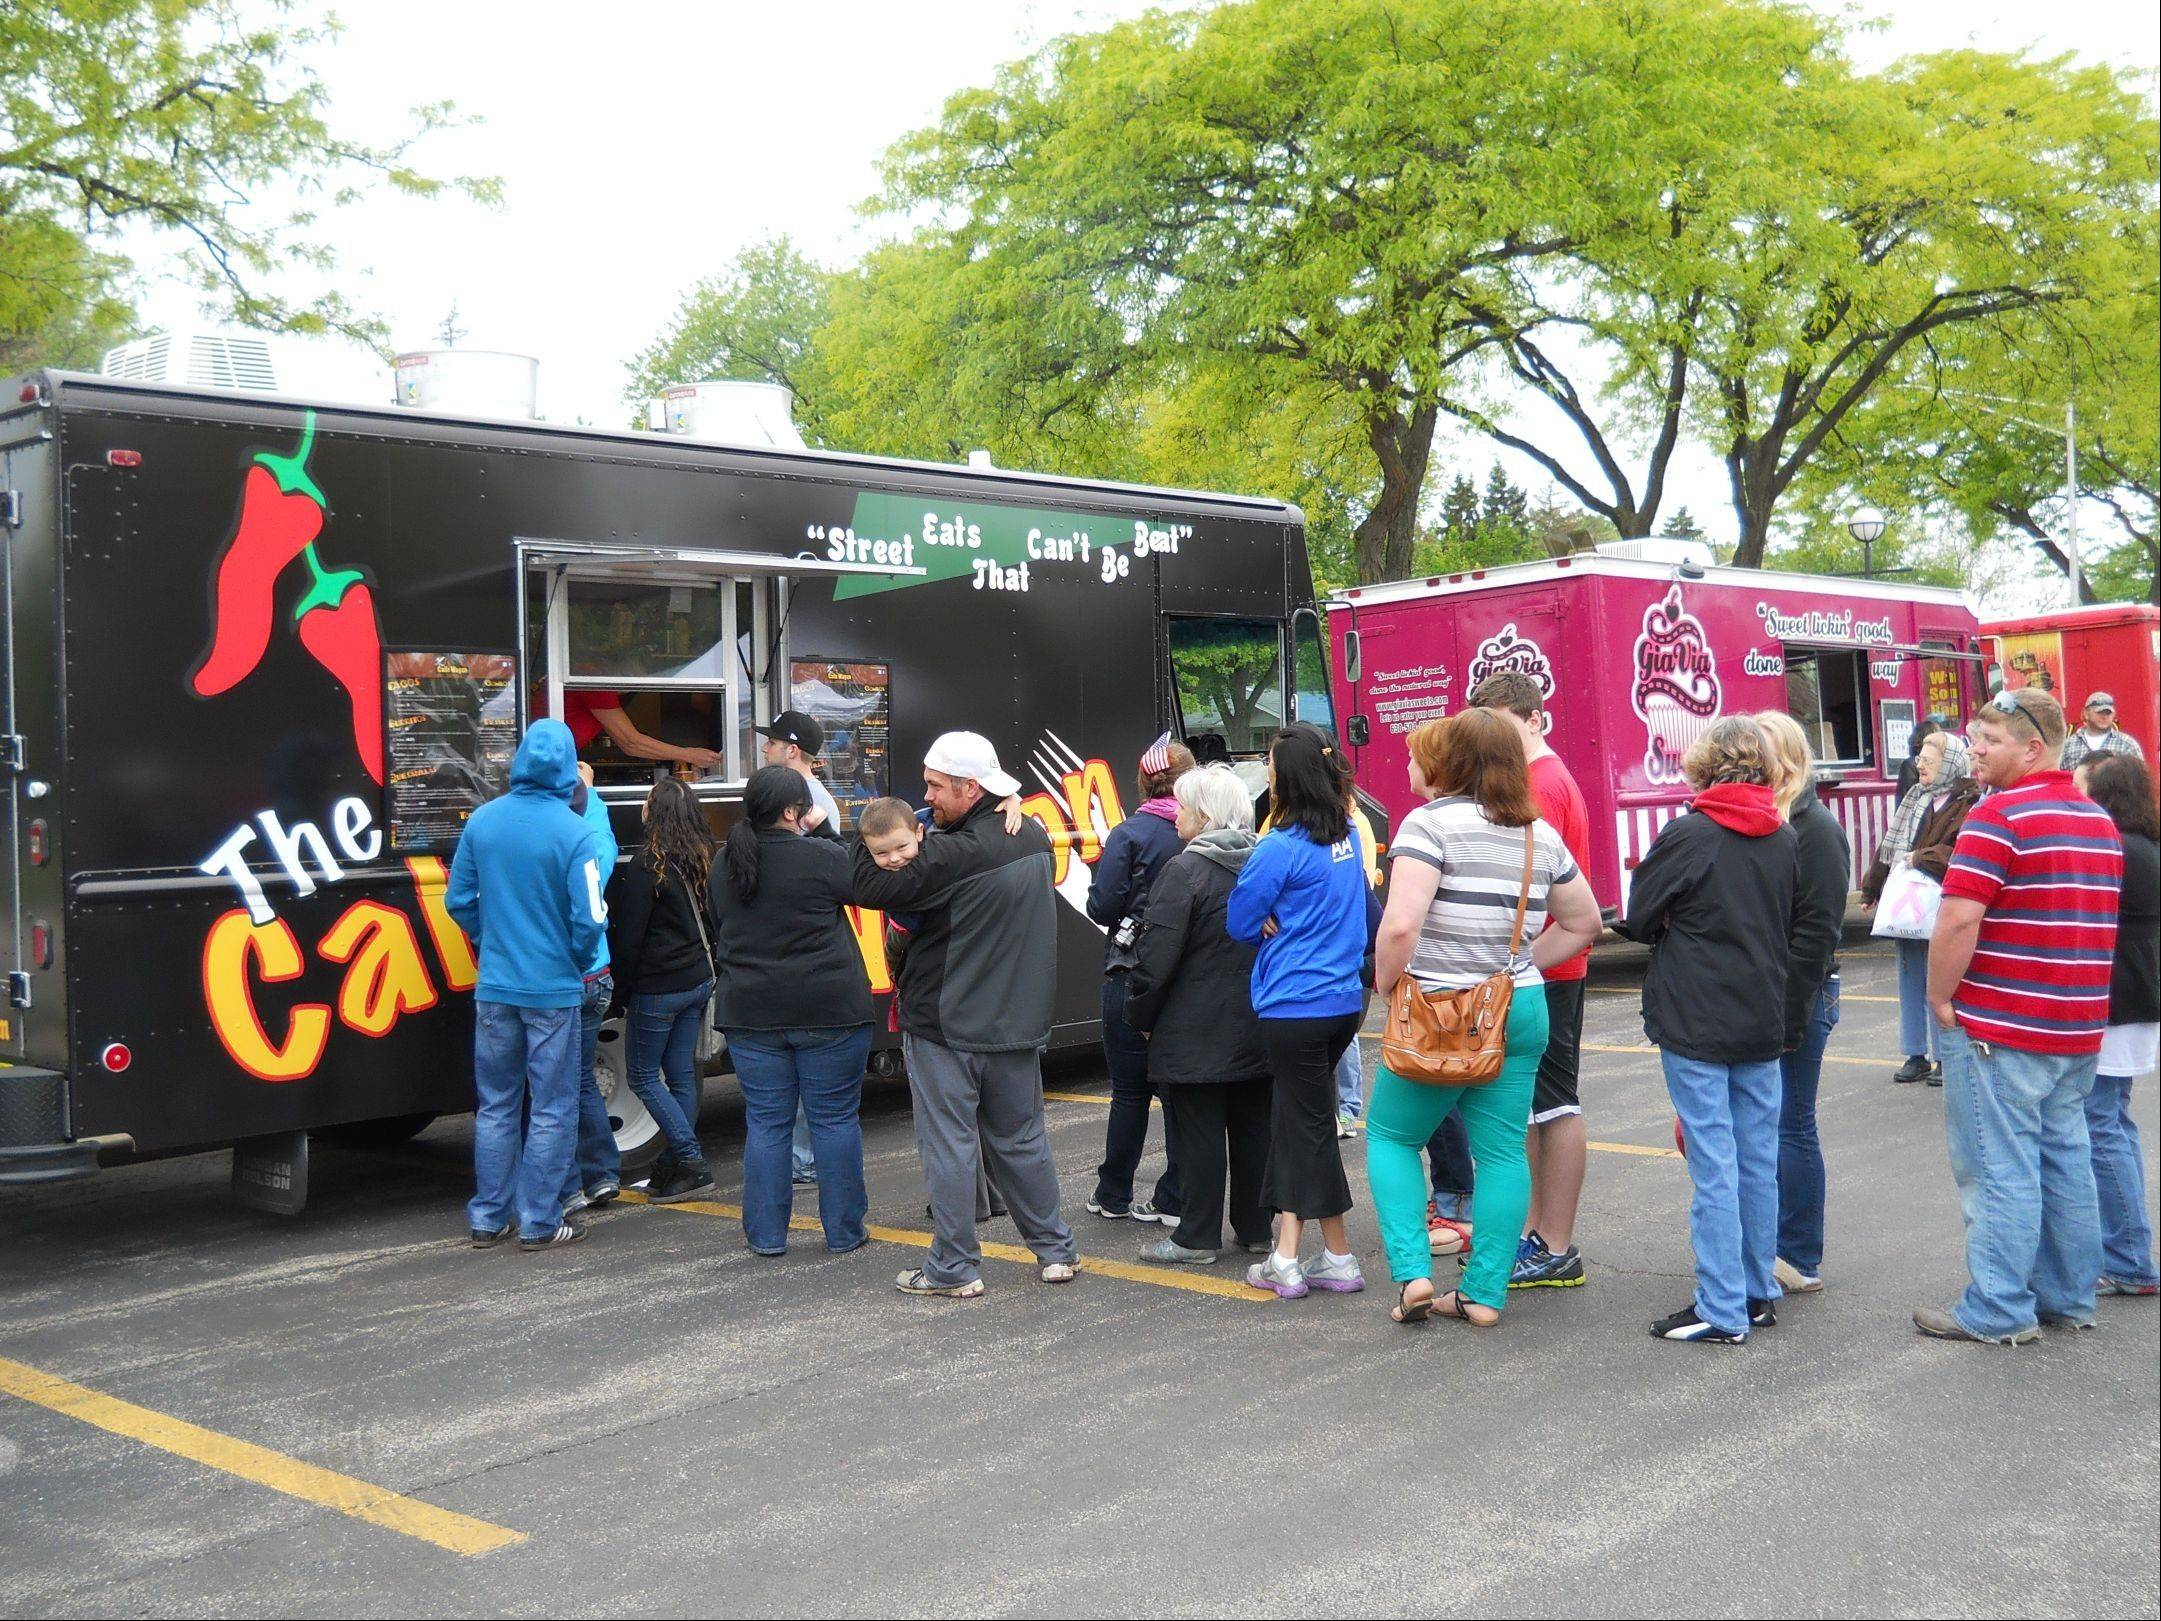 Rolling Meadows inaugurates a monthly Farmers Market/Food Truck event.